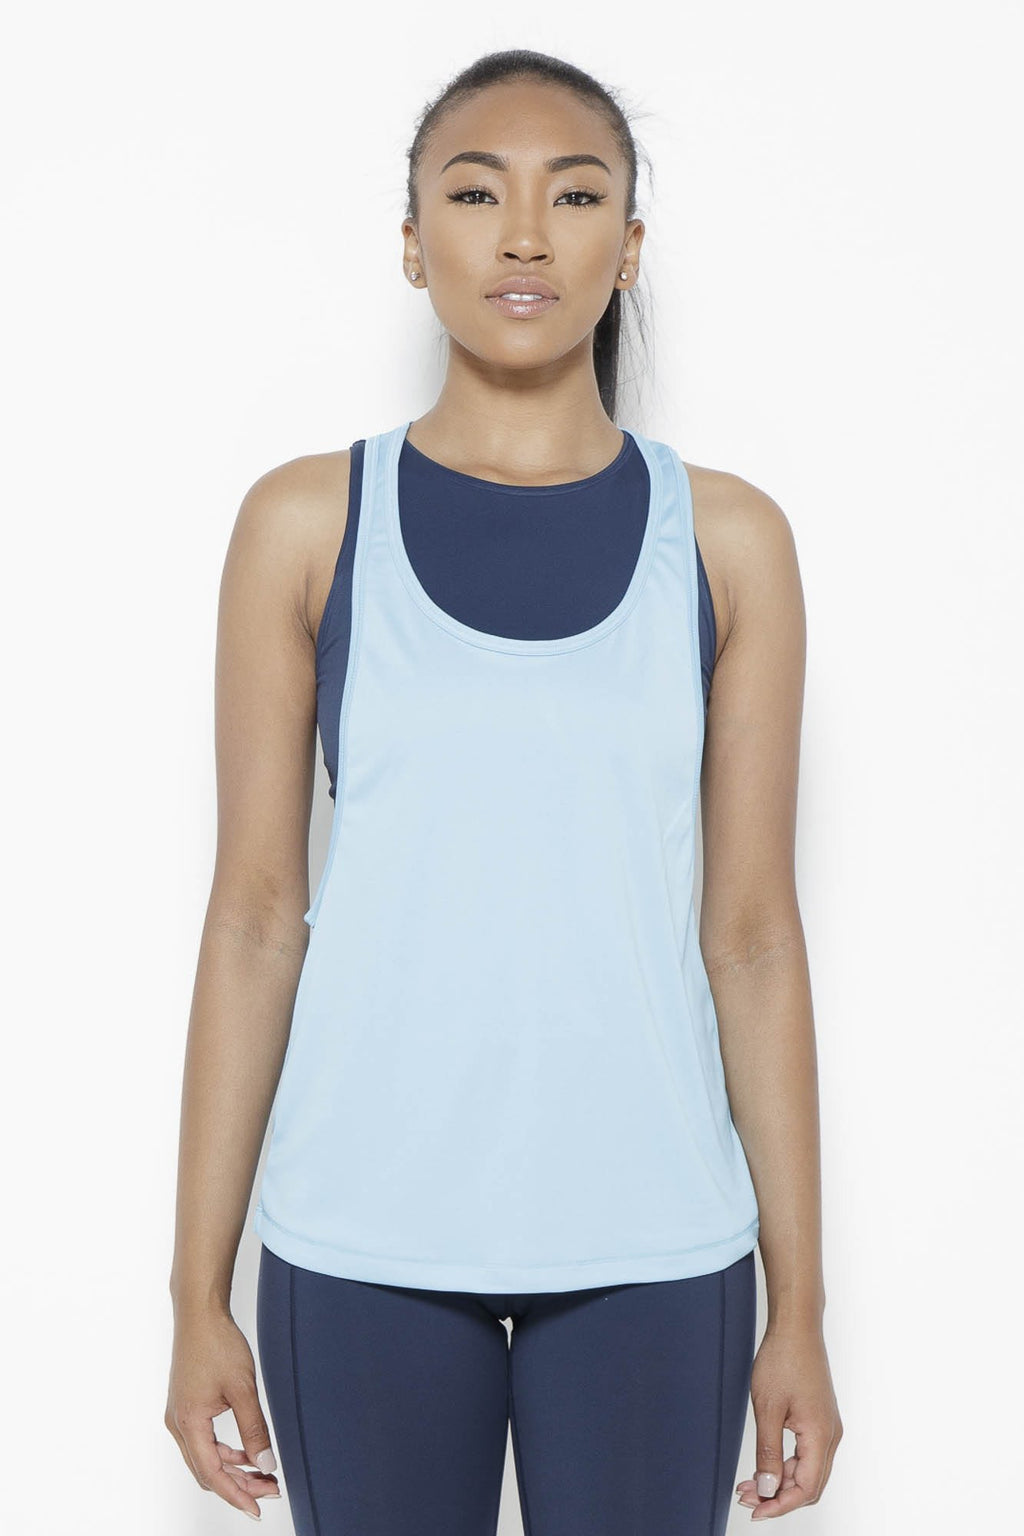 Crater in Arms Tank Top- SurfBlue Clothing Soffe S SurfBlue 100% Polyester